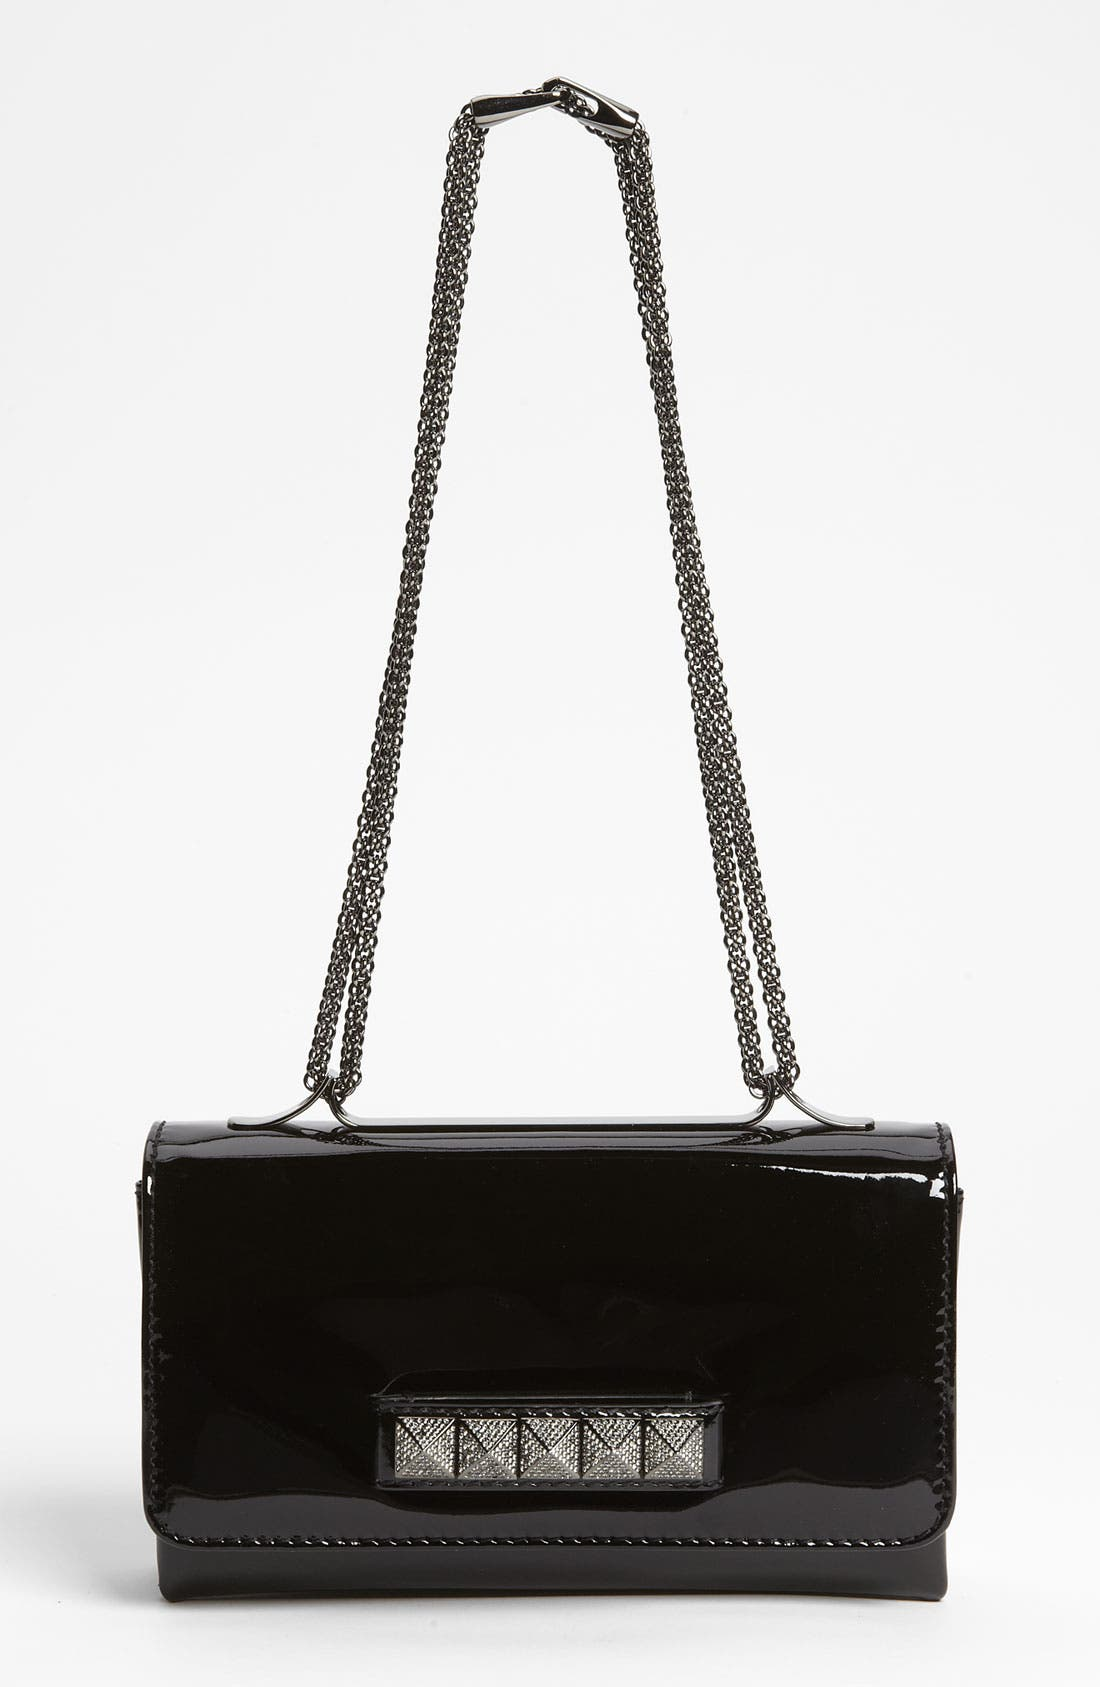 Alternate Image 1 Selected - Valentino 'Noir - Va Va Voom' Patent Leather Shoulder Bag